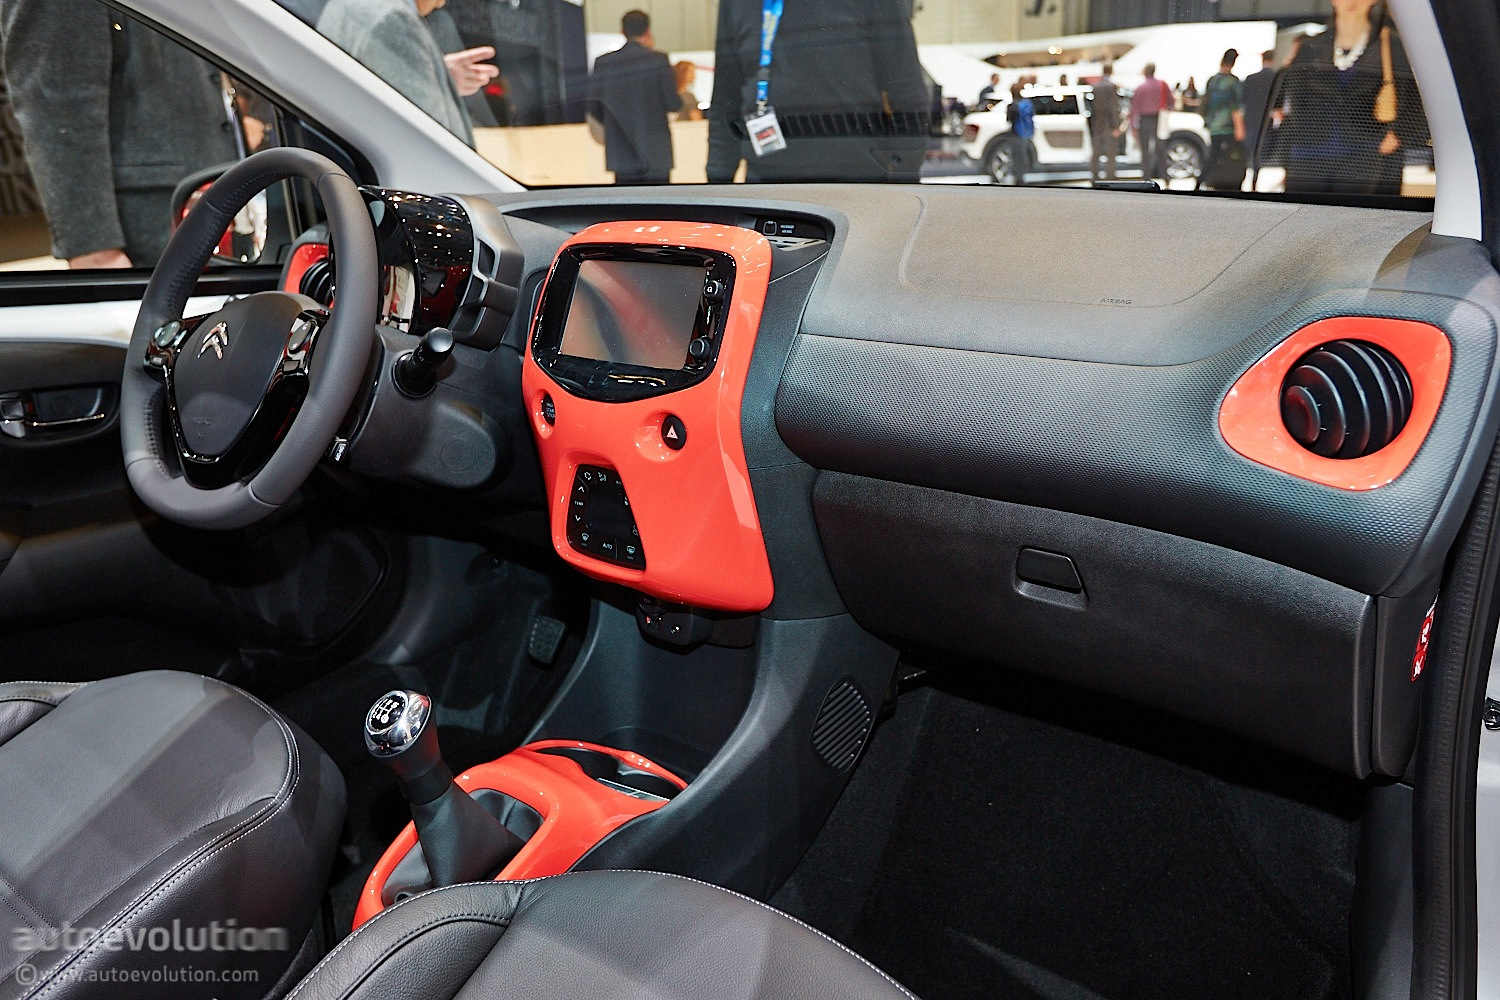 Nissan Maxima 2017 Interior >> Citroen C1 Marks Return to Form for Small French Cars ...